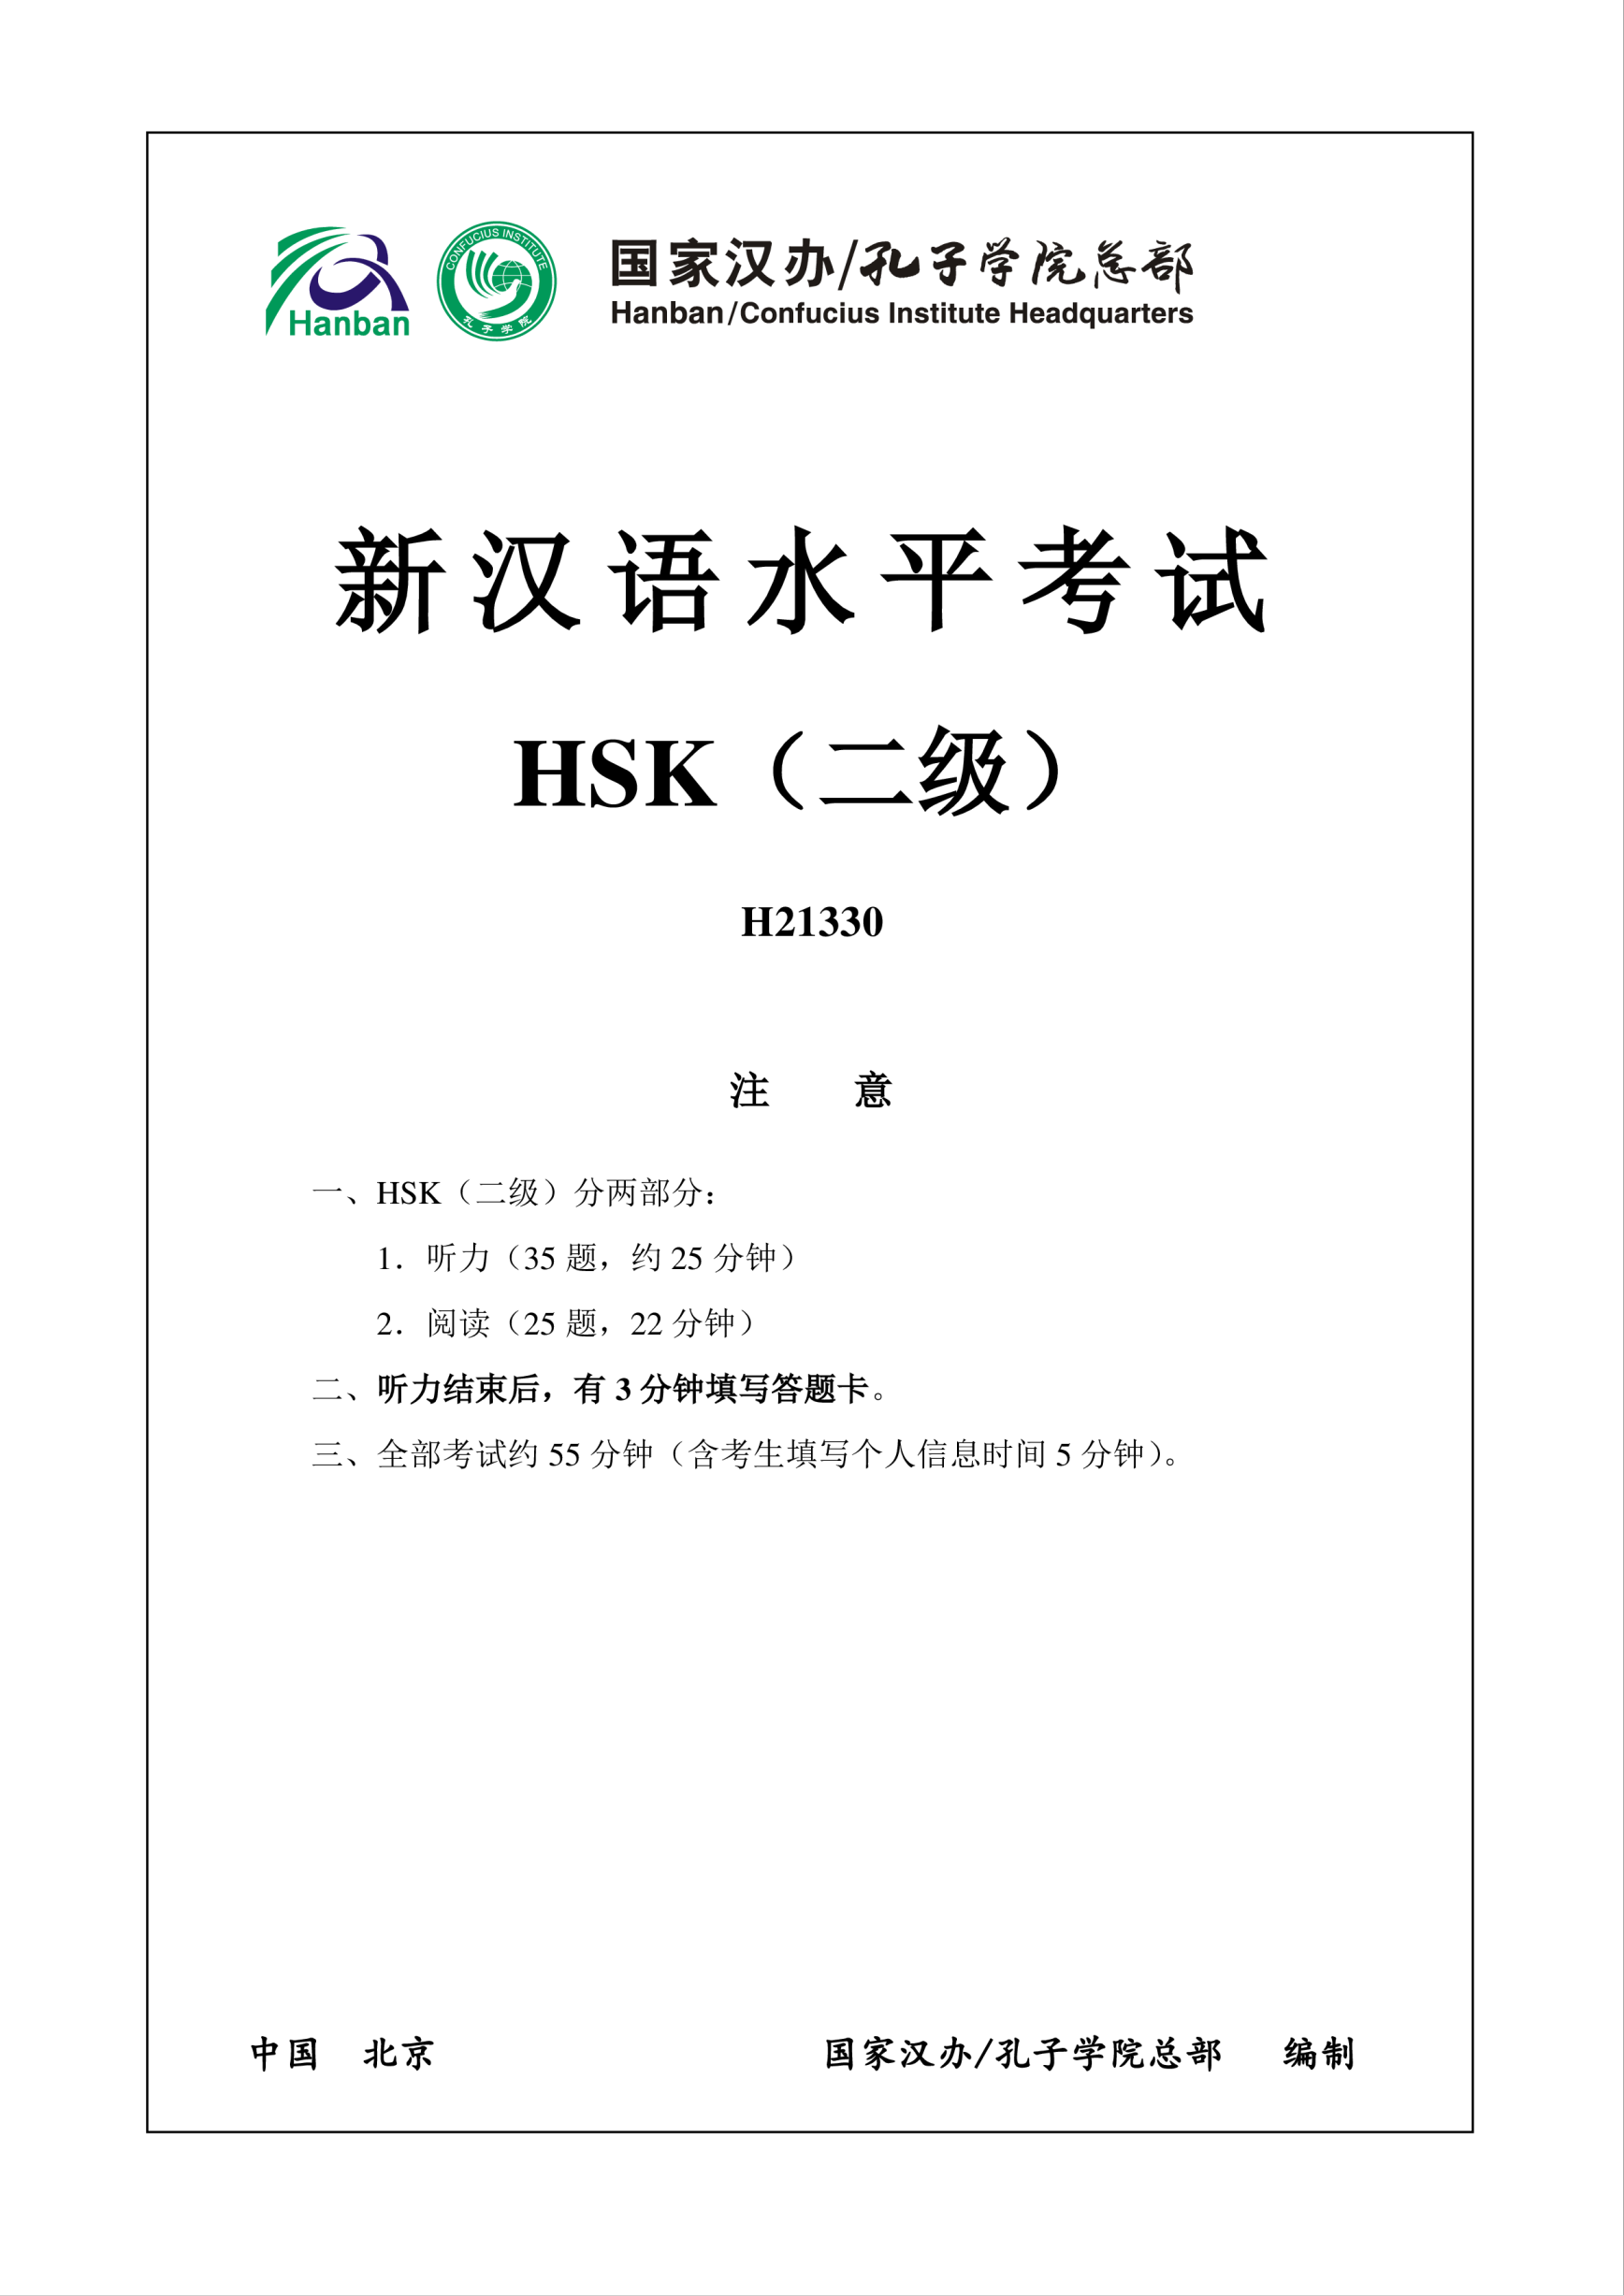 template preview imageHSK2 Chinese Exam including Answers # HSK2 H21330